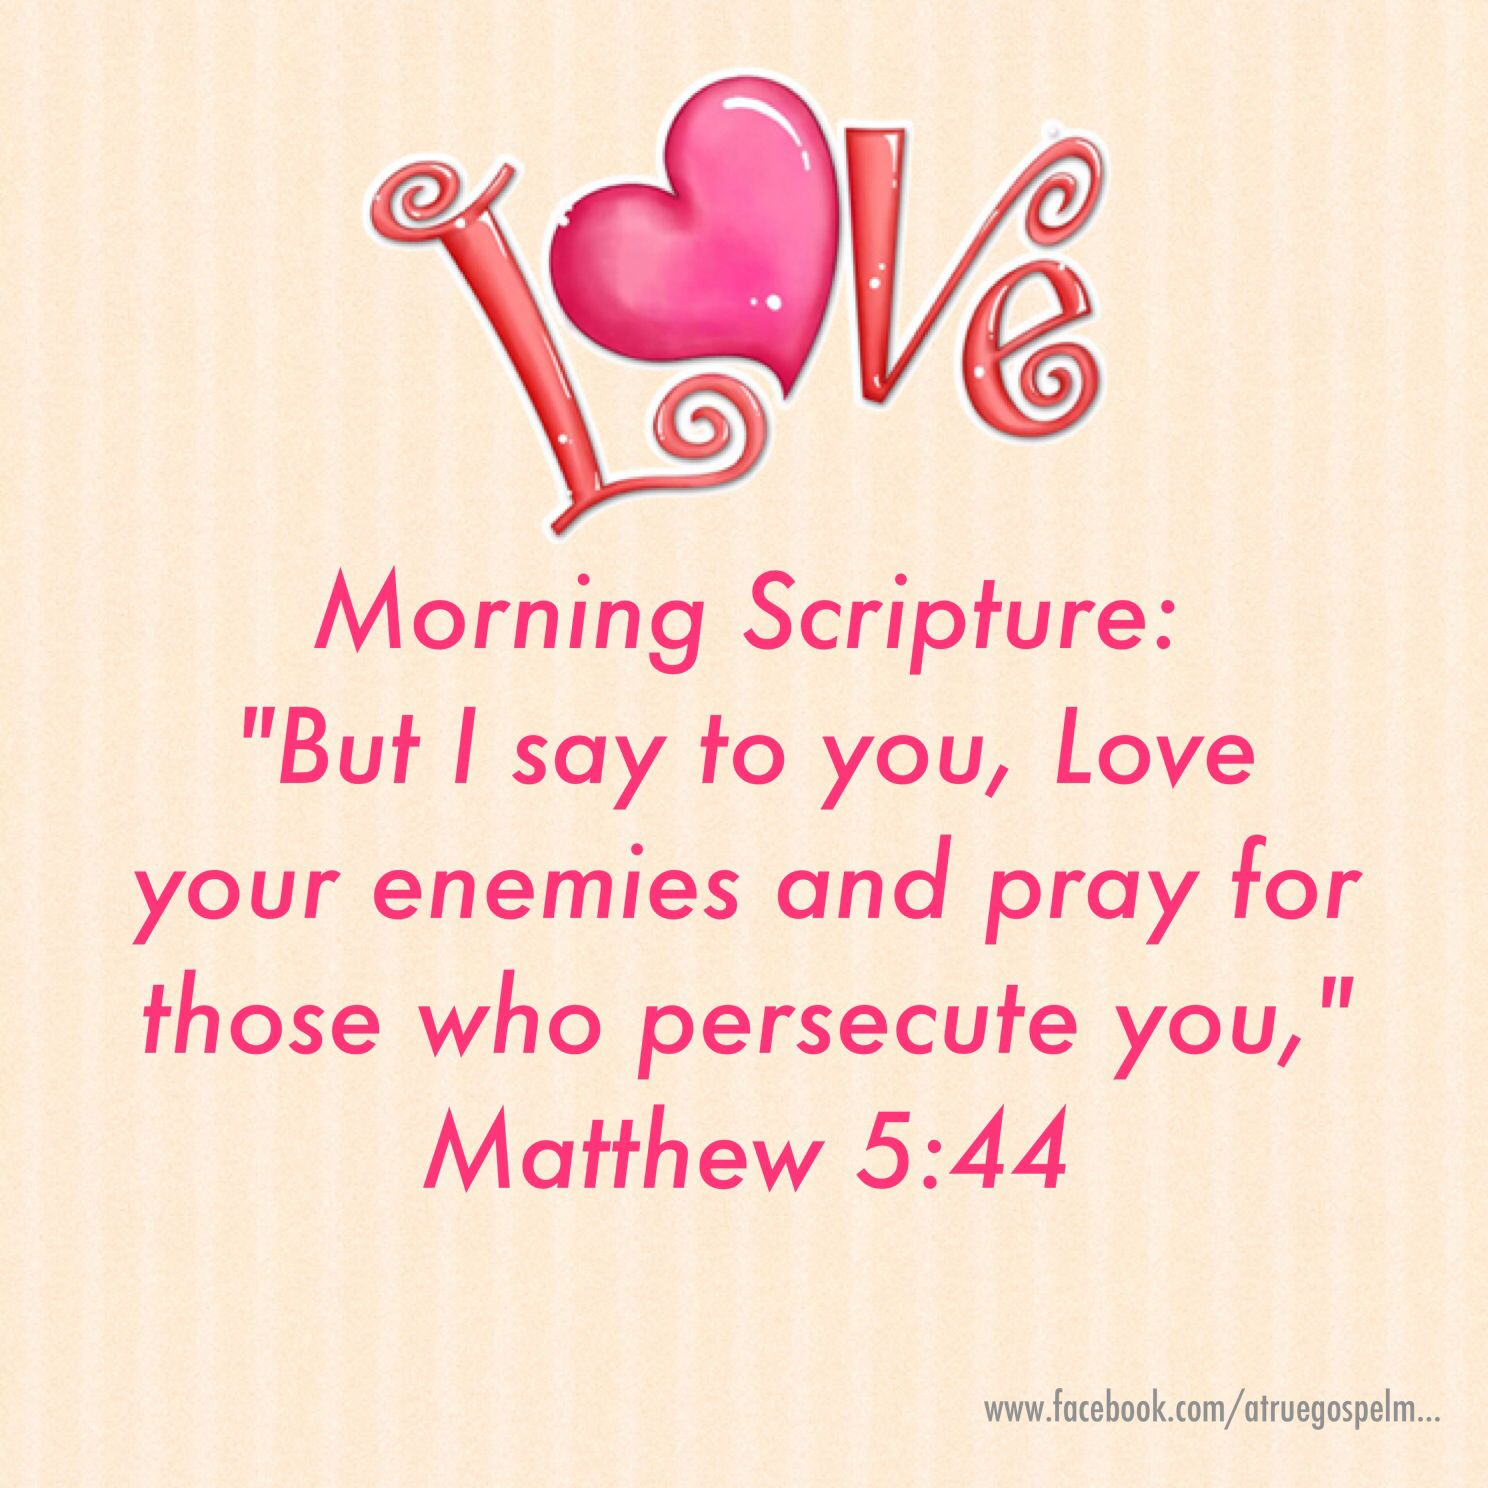 Bible Quotes Enemies: Morning Scripture: Love Your Enemies, Pray For Those Who